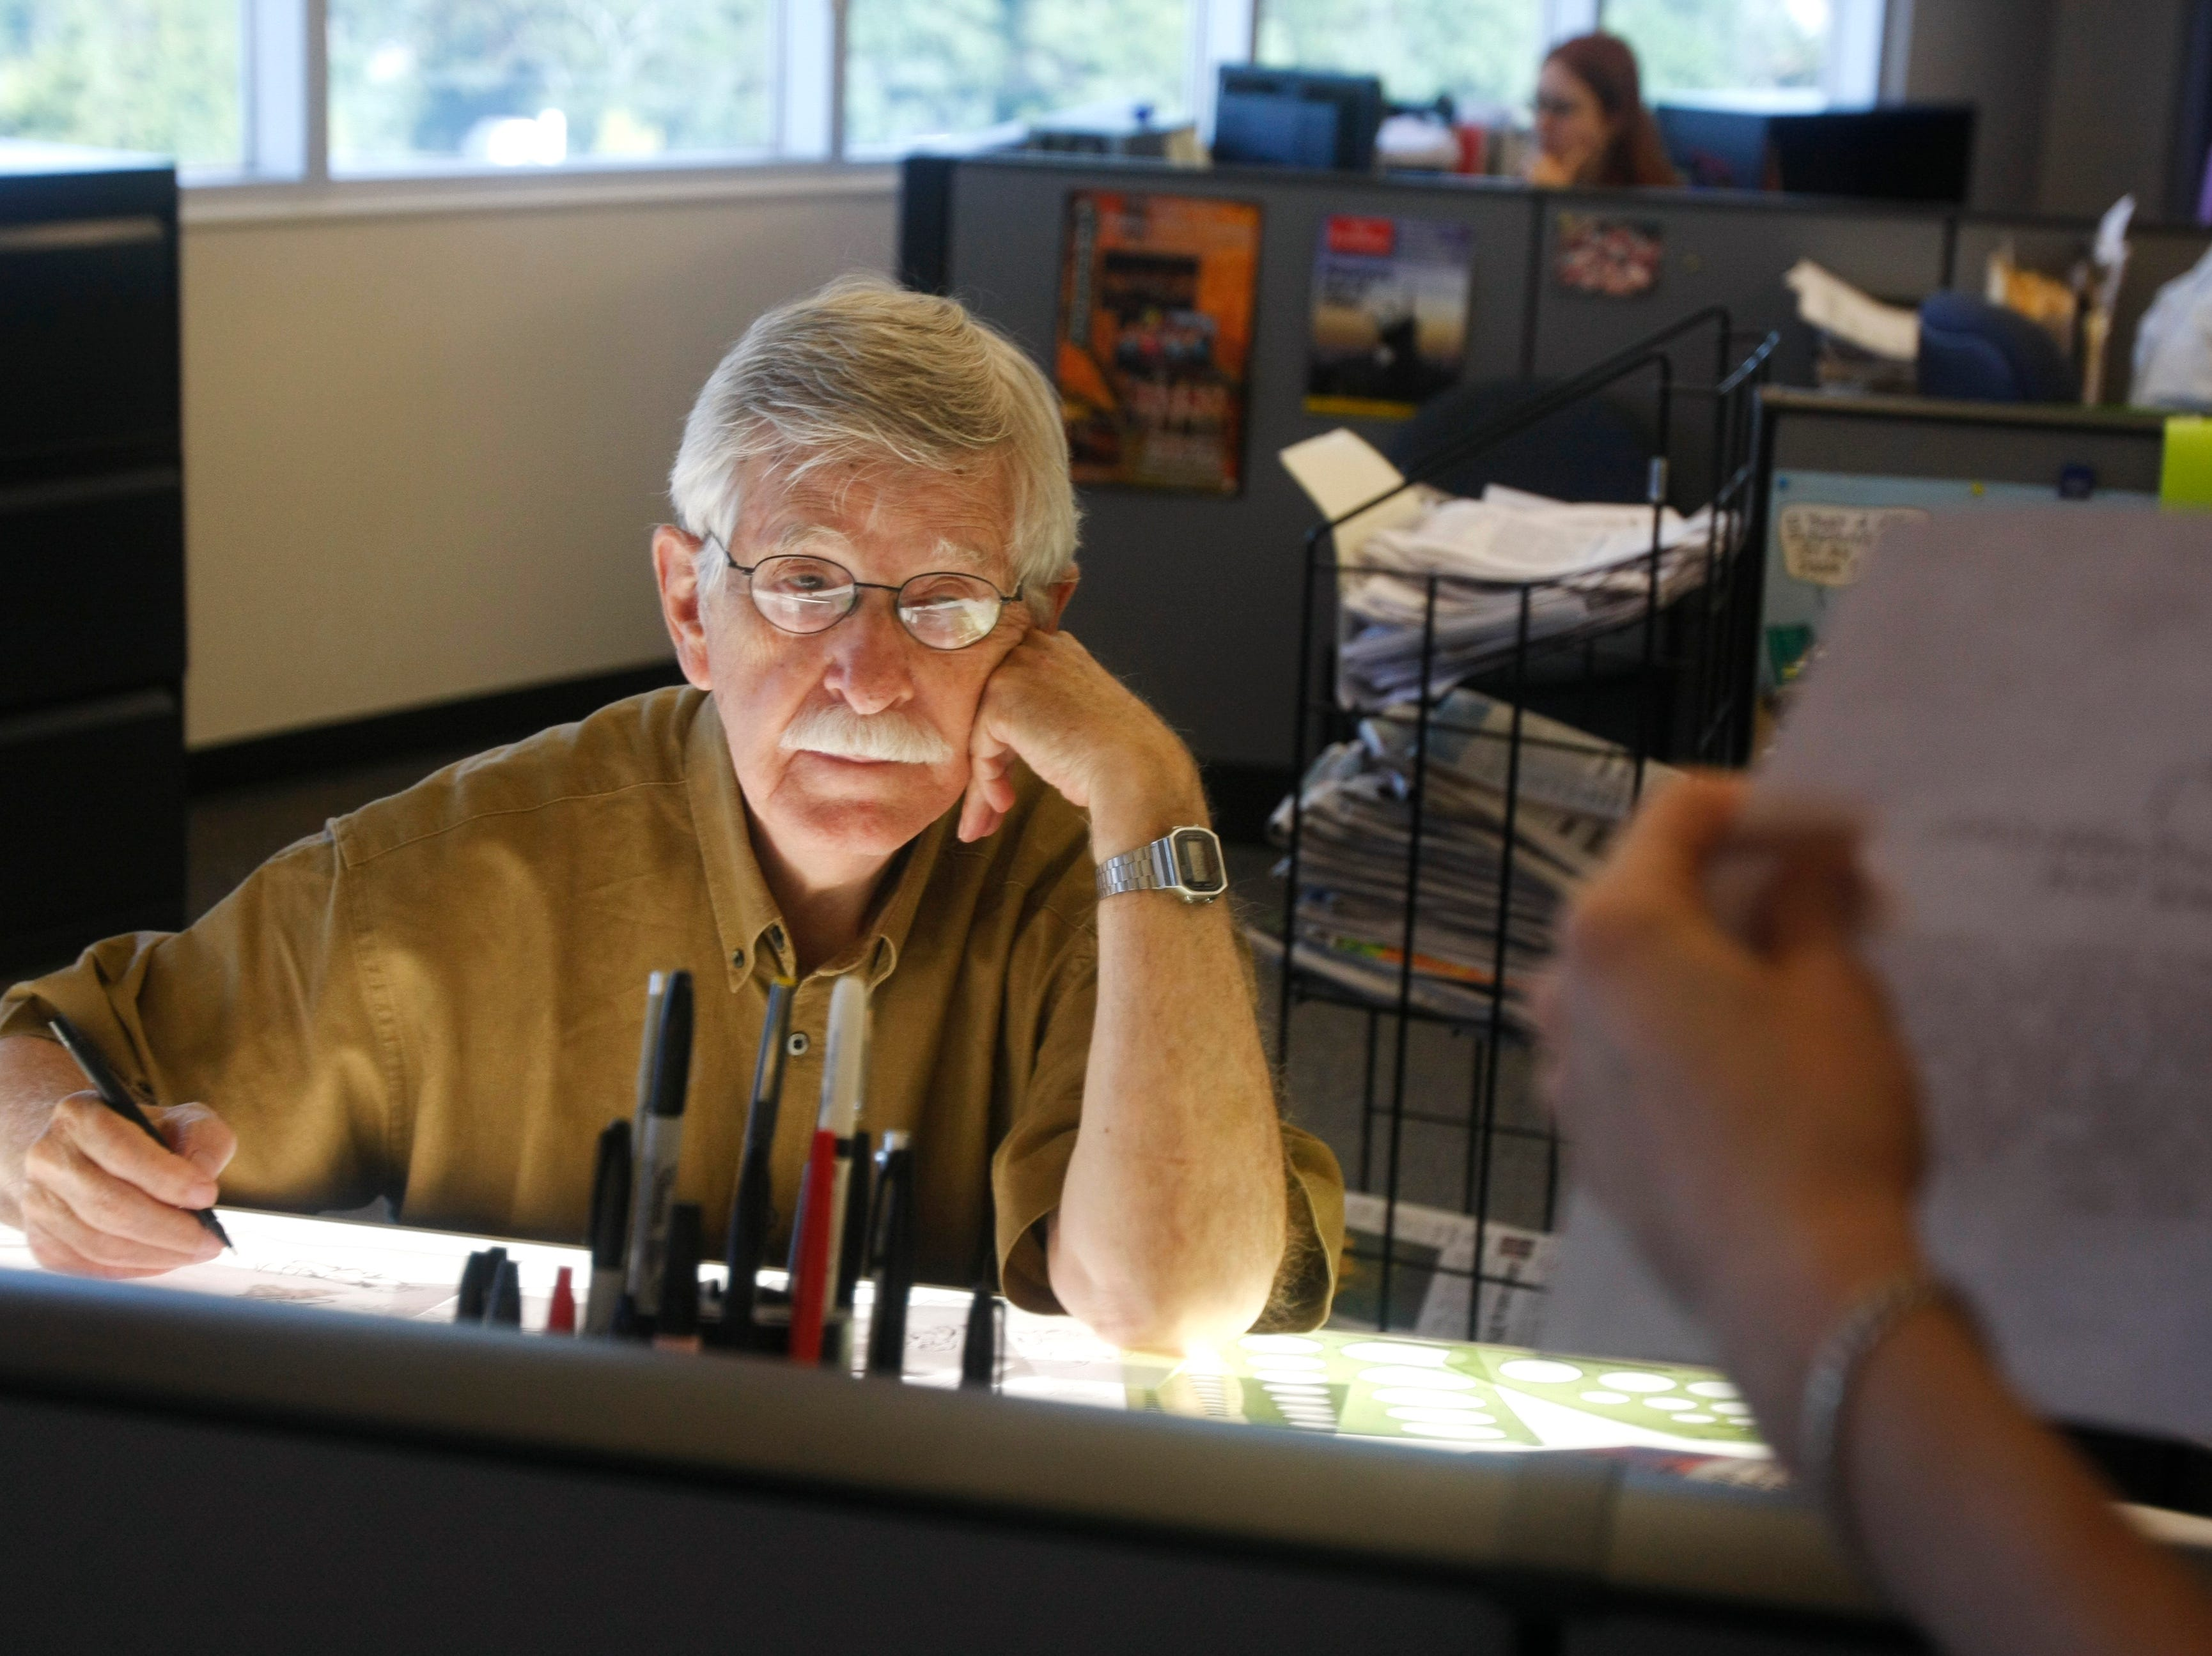 Charlie Daniel, Editorial Cartoonist for the News Sentinel, pauses from drawing to answer a question from a co-worker. Daniel is celebrating 50 years of cartooning in Knoxville staring with his first job at the Knoxville Journal. Tuesday, July 1, 2008